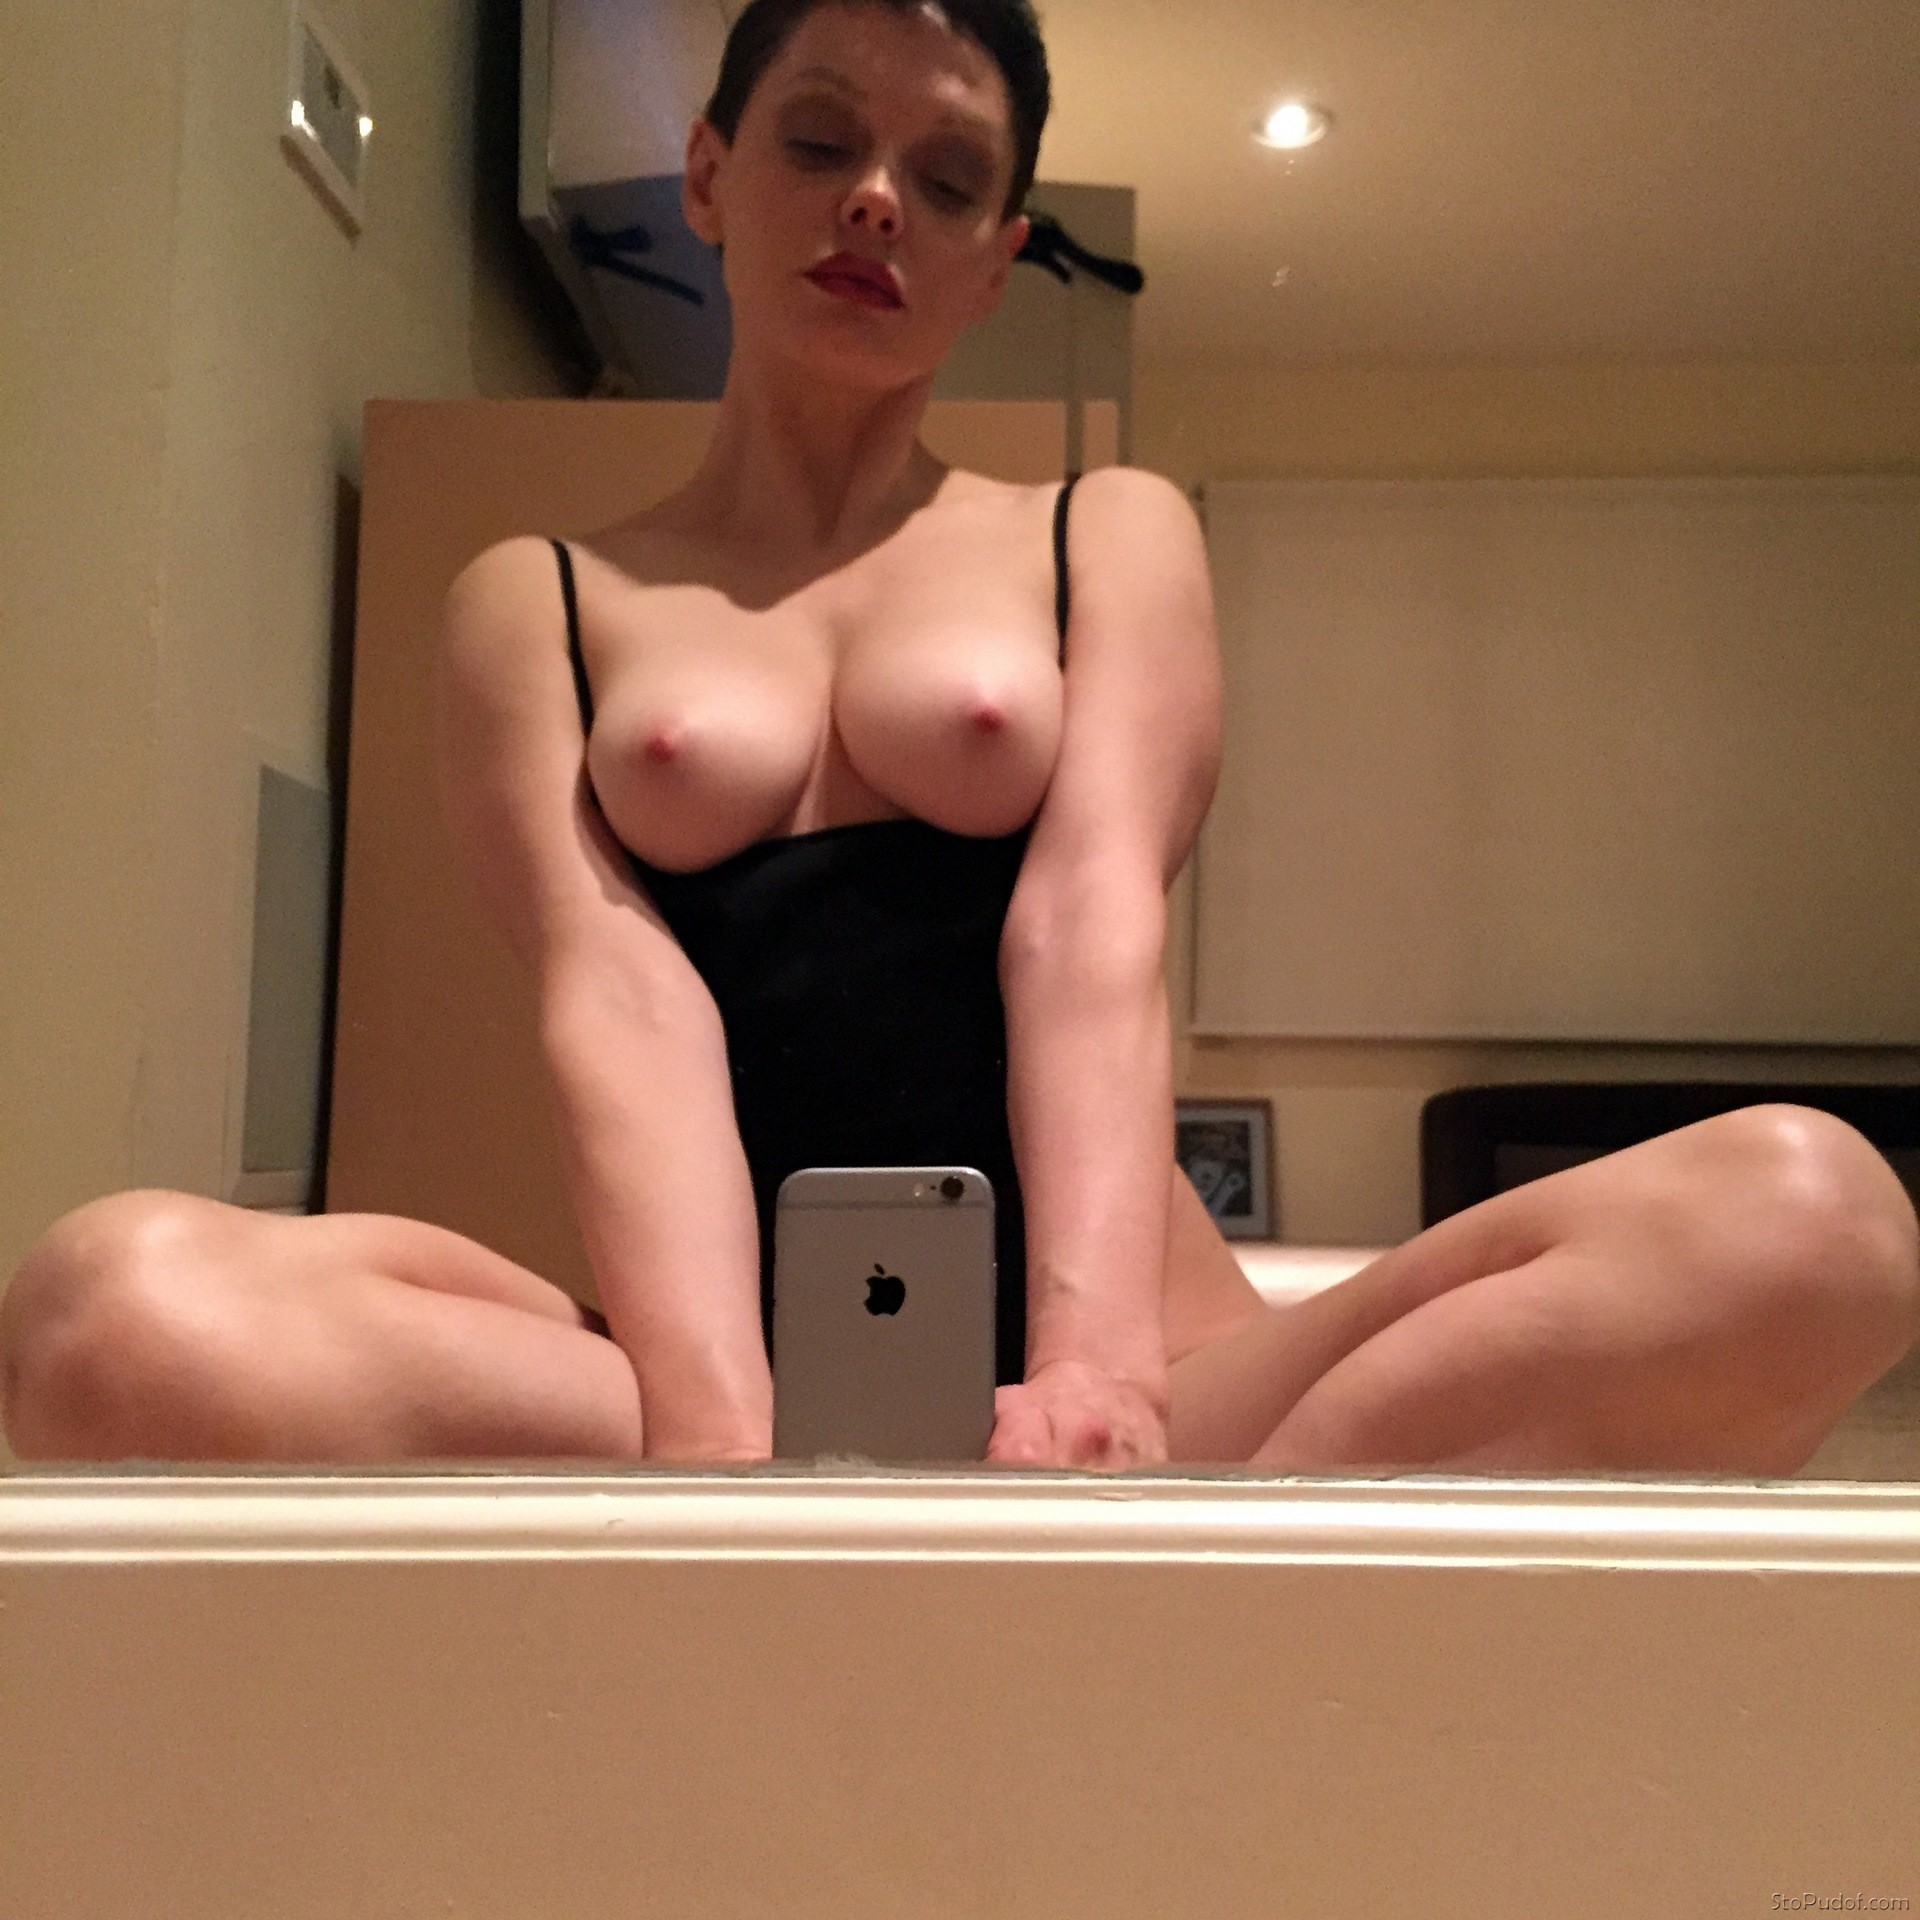 Rose McGowan naked pic - UkPhotoSafari